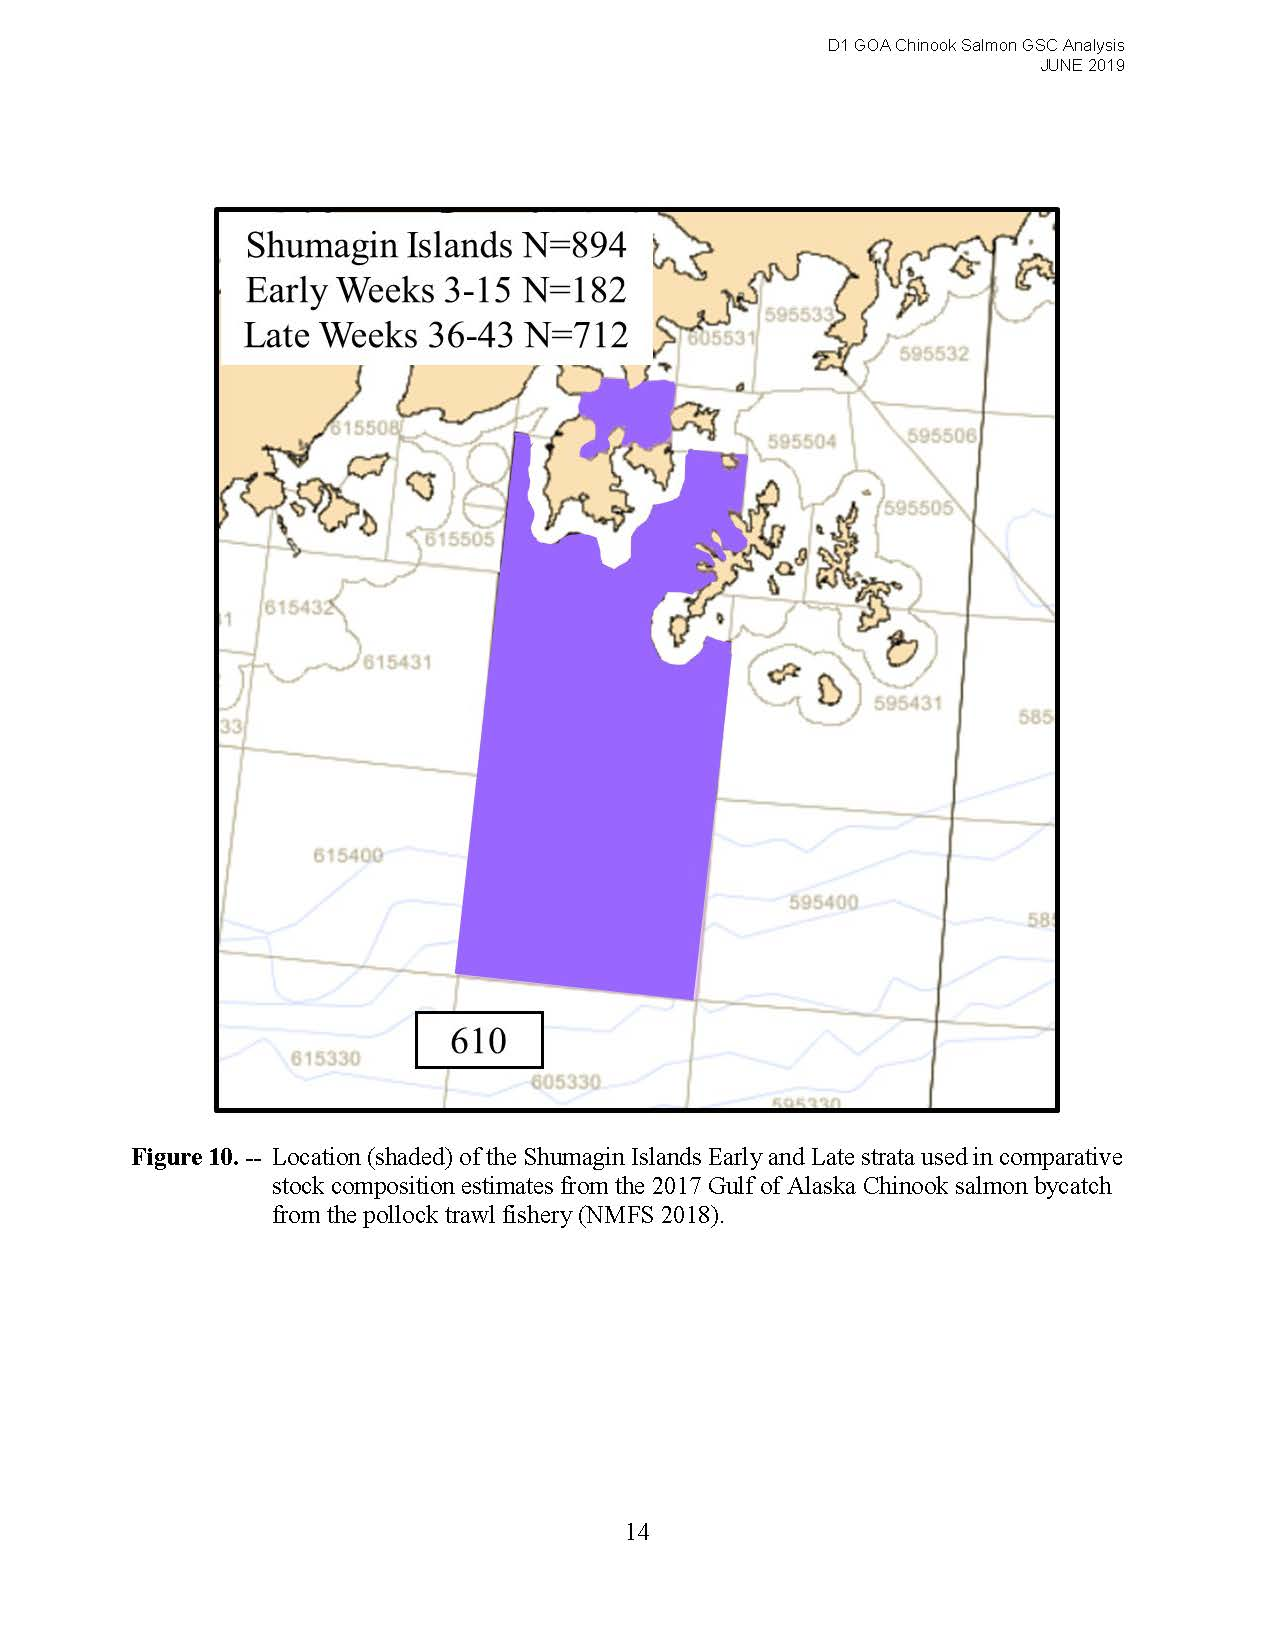 DownloadFile  GOA Chinook Salmon Stock Composition Report_Page_22.jpg